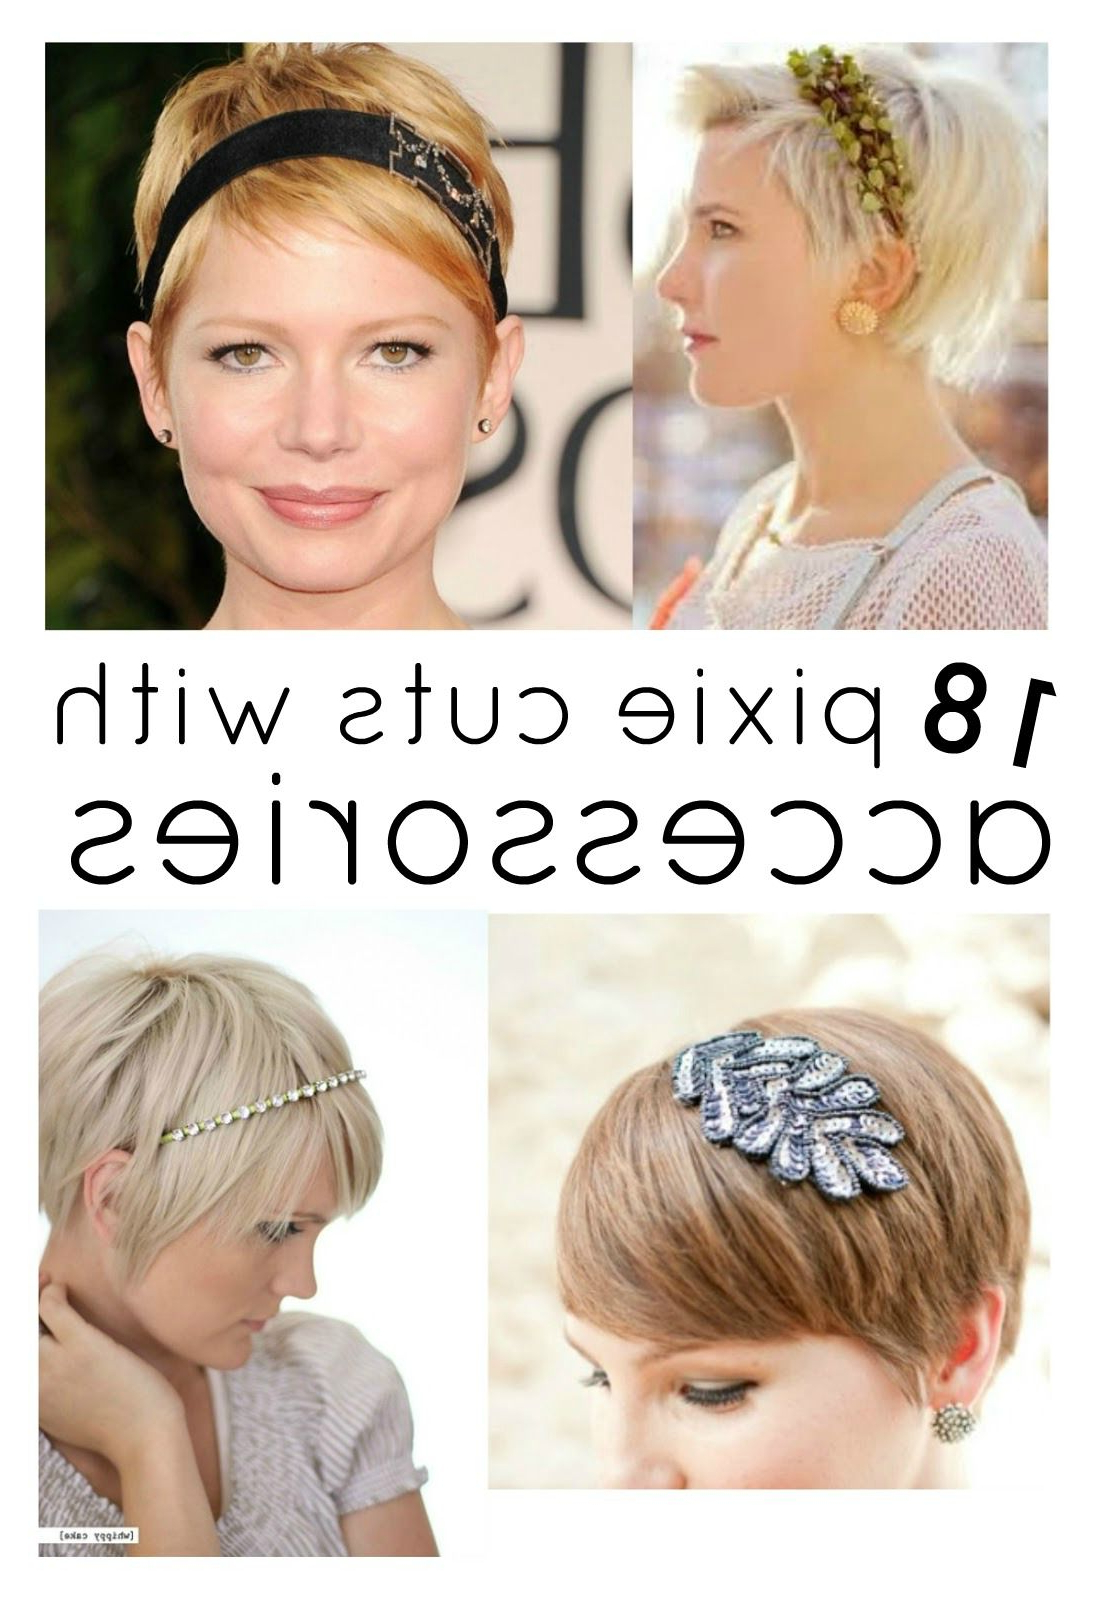 A Beautiful Little Life: Perfect Pixie Haircuts Part 3: 18 Pixie Intended For Short Hairstyles With Headbands (View 21 of 25)